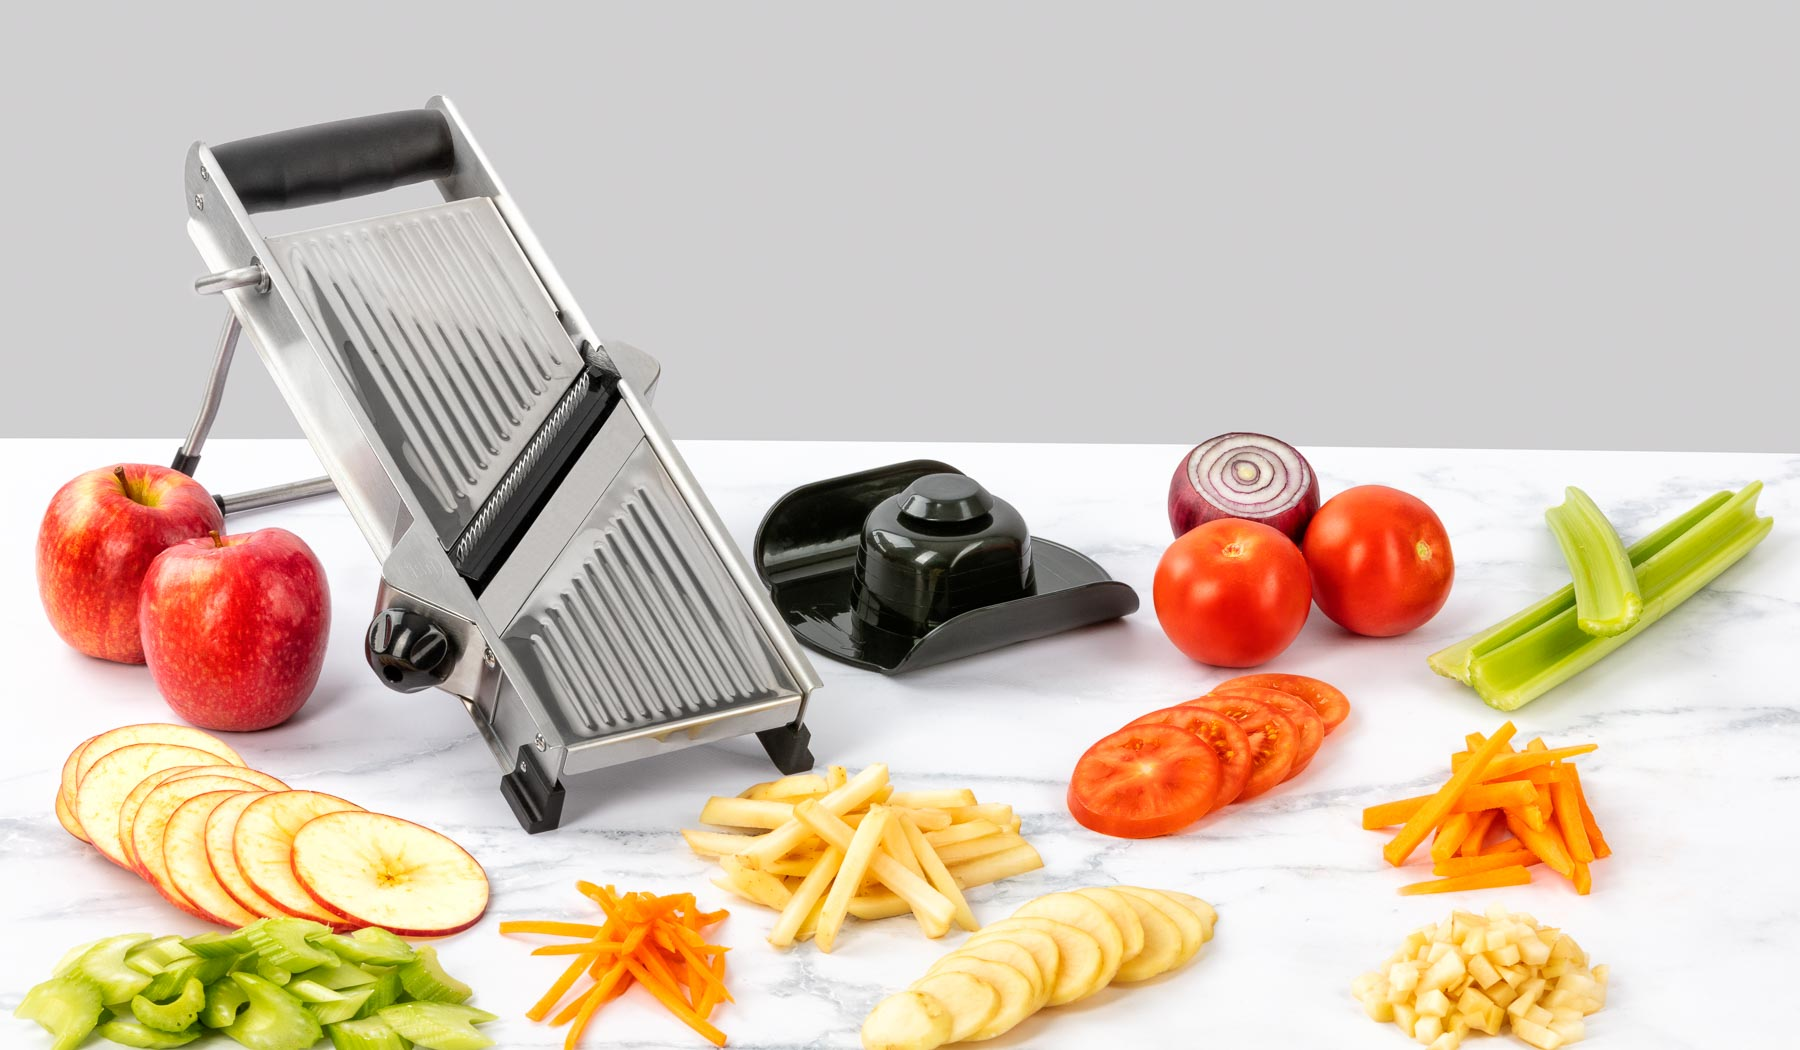 Forever Sharp Vegetable slices stainless steel lifestyle product photography sample